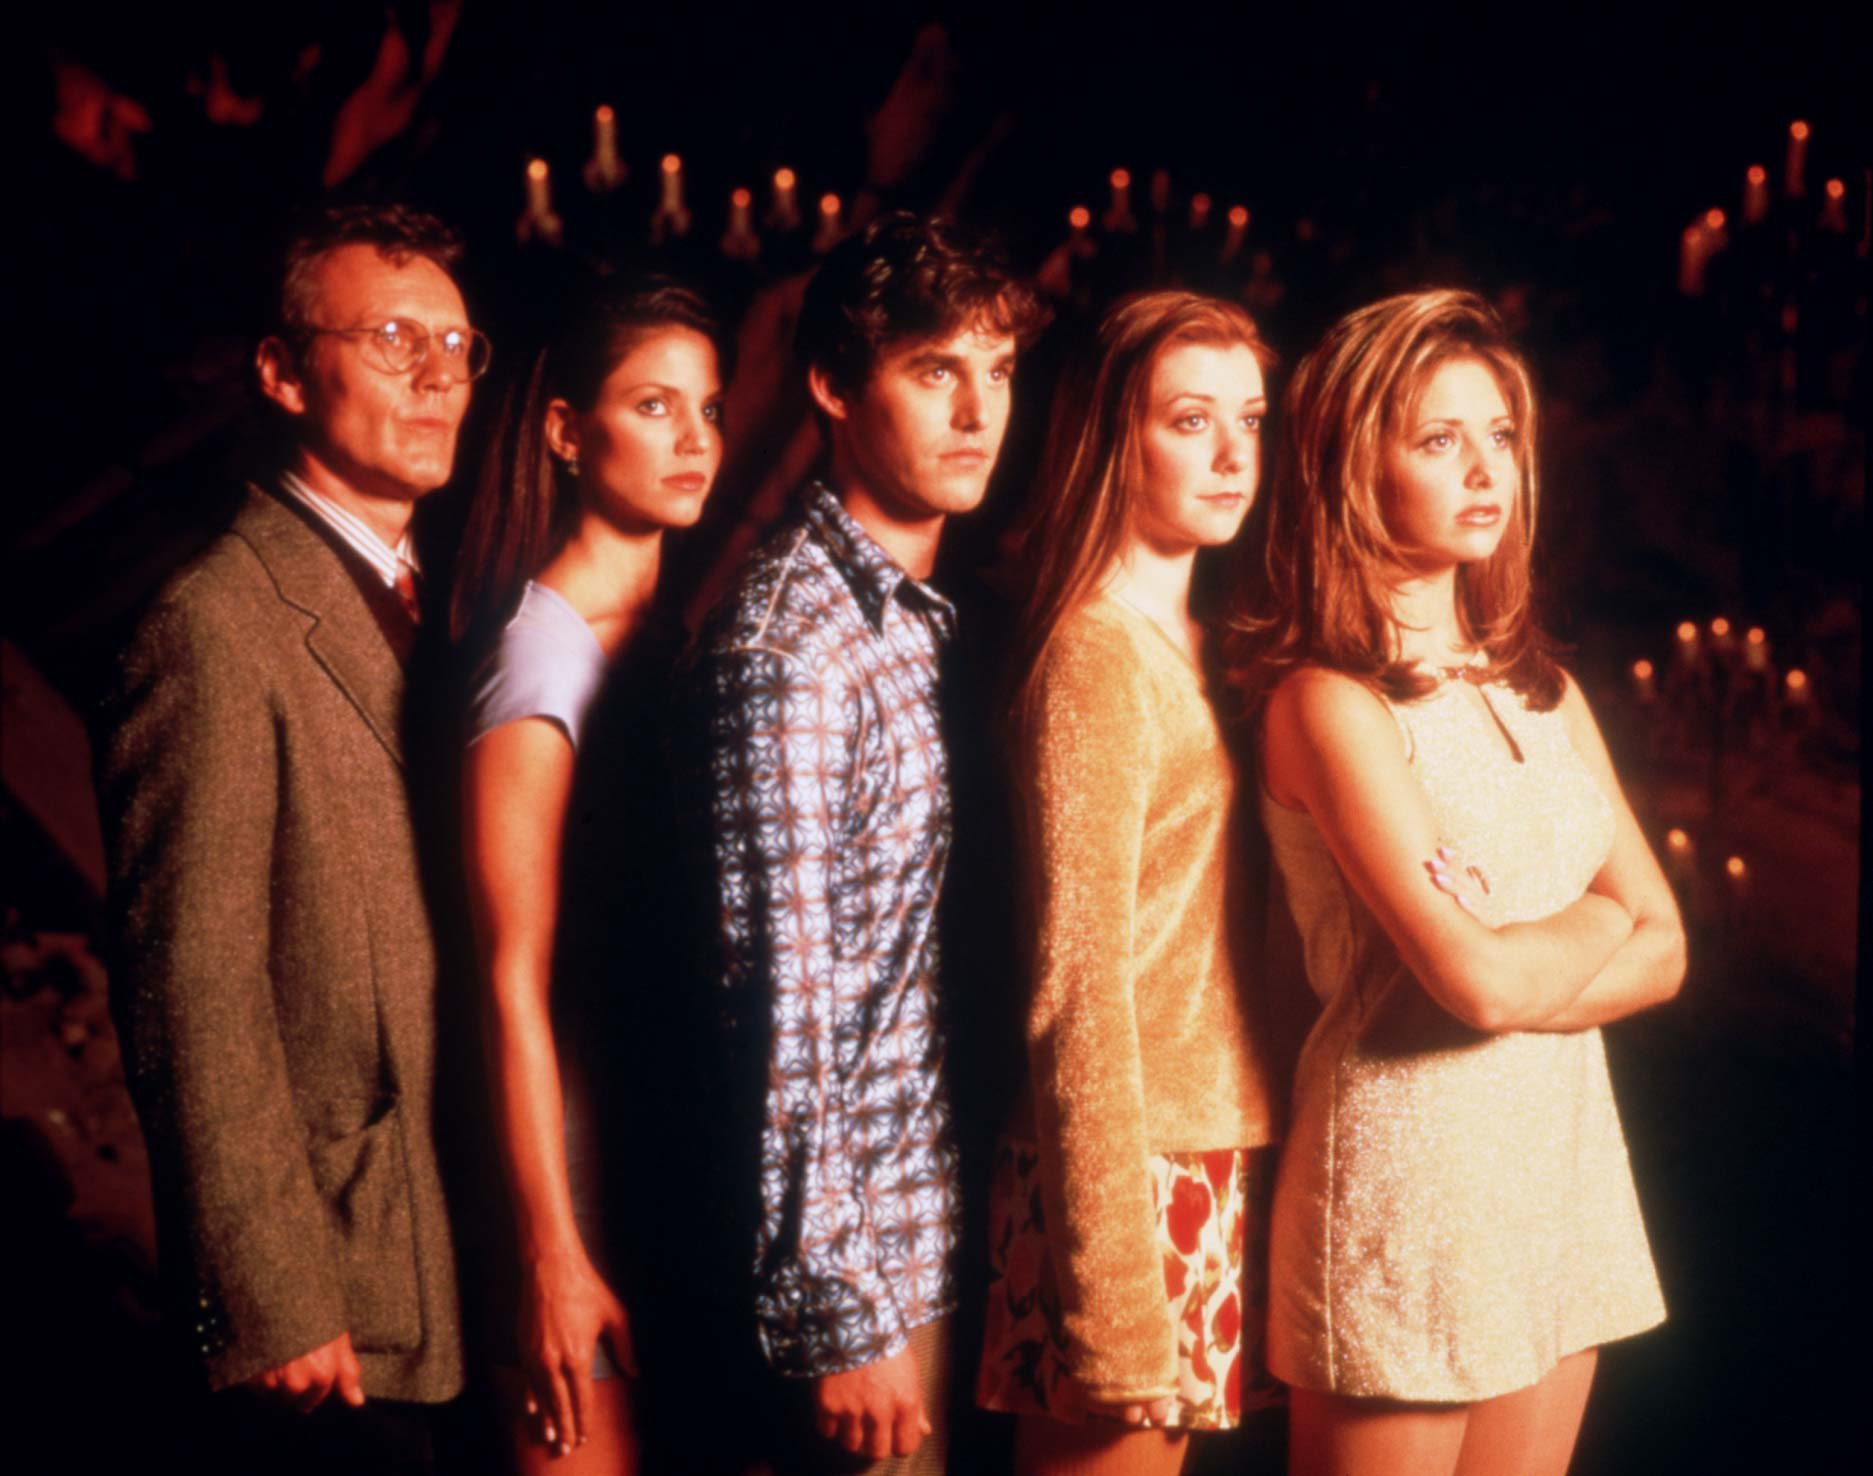 BUFFY THE VAMPIRE SLAYER CAST (L TO R) ANTHONY STEWART HEAD, CHARISMA CARPENTER, NICHOLAS BRENDON, ALYSON HANNIGAN AND SARAH MICHELLE GELLAR. (C) SKY ONE